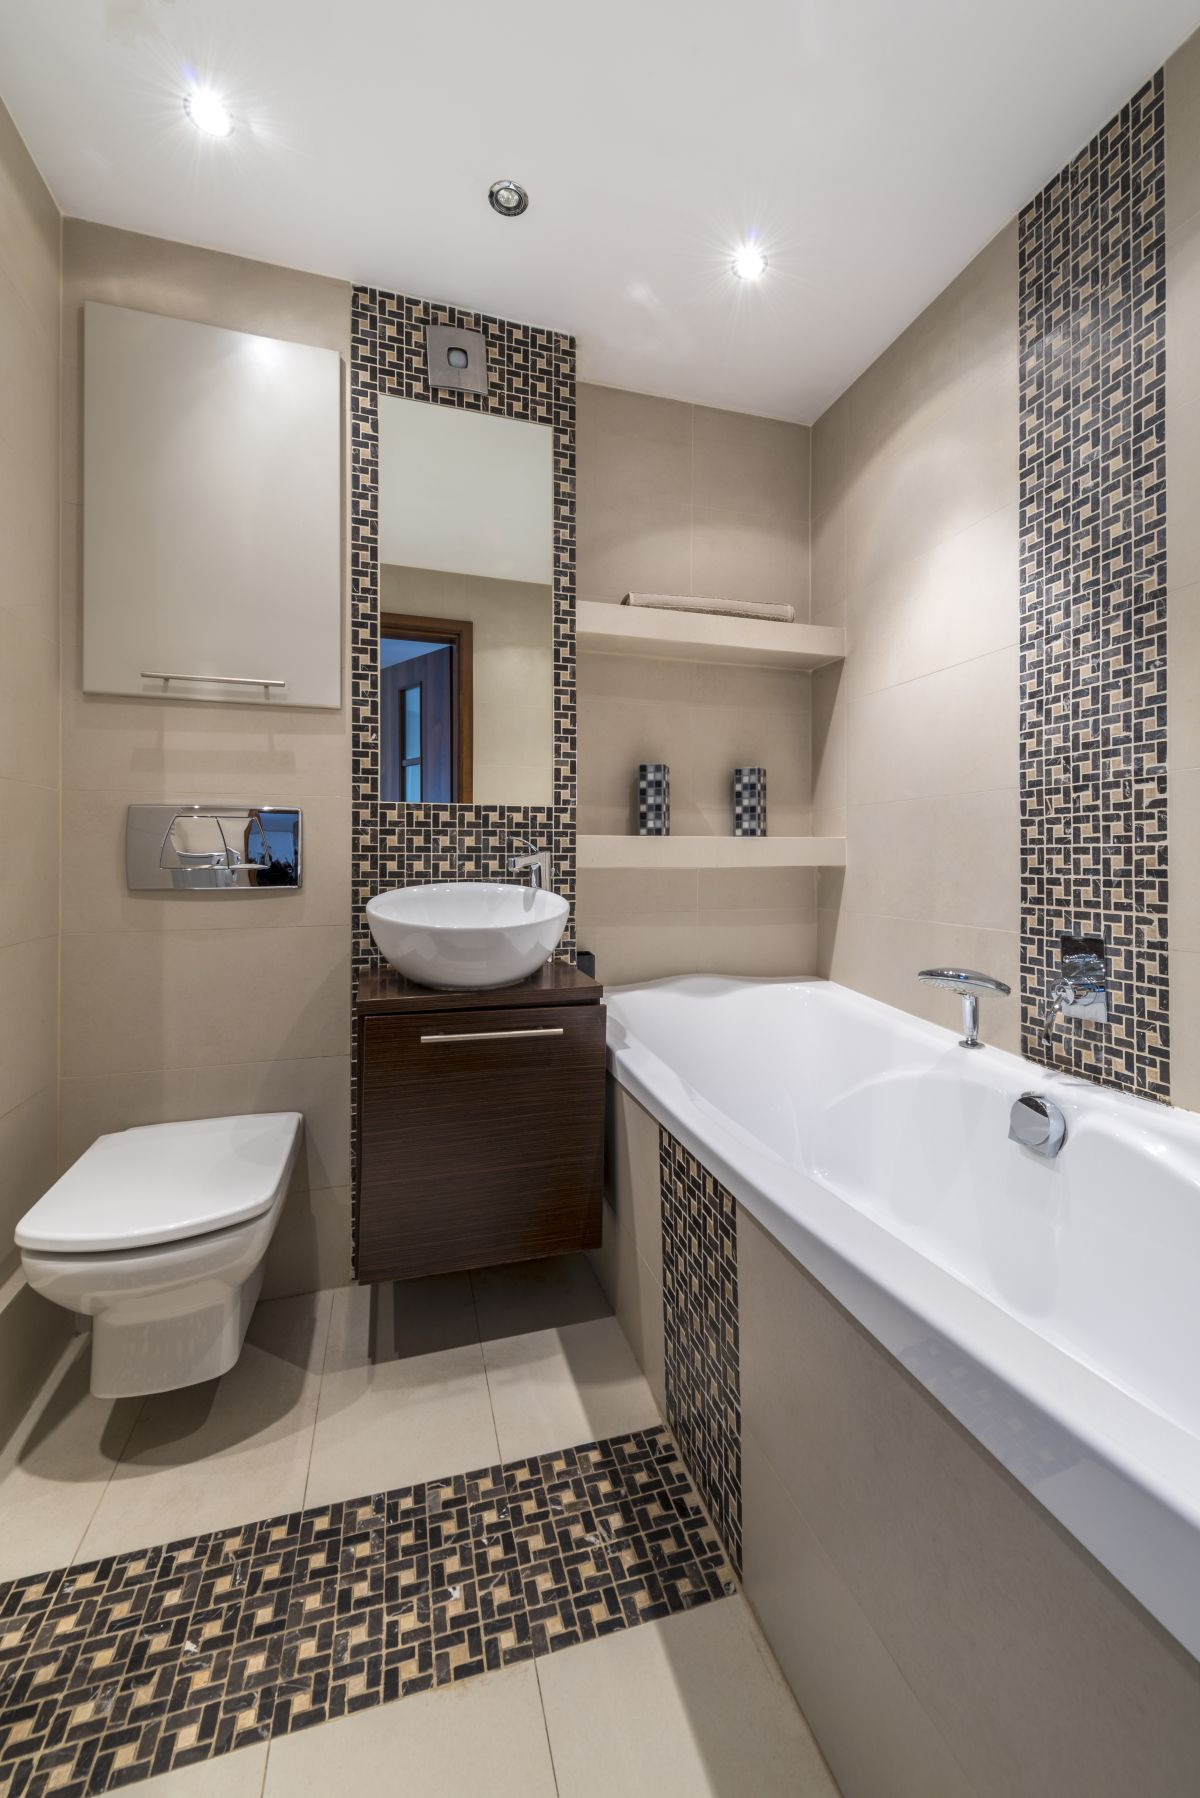 Size matters bathroom renovation costs for your size bath Average cost for small bathroom remodel